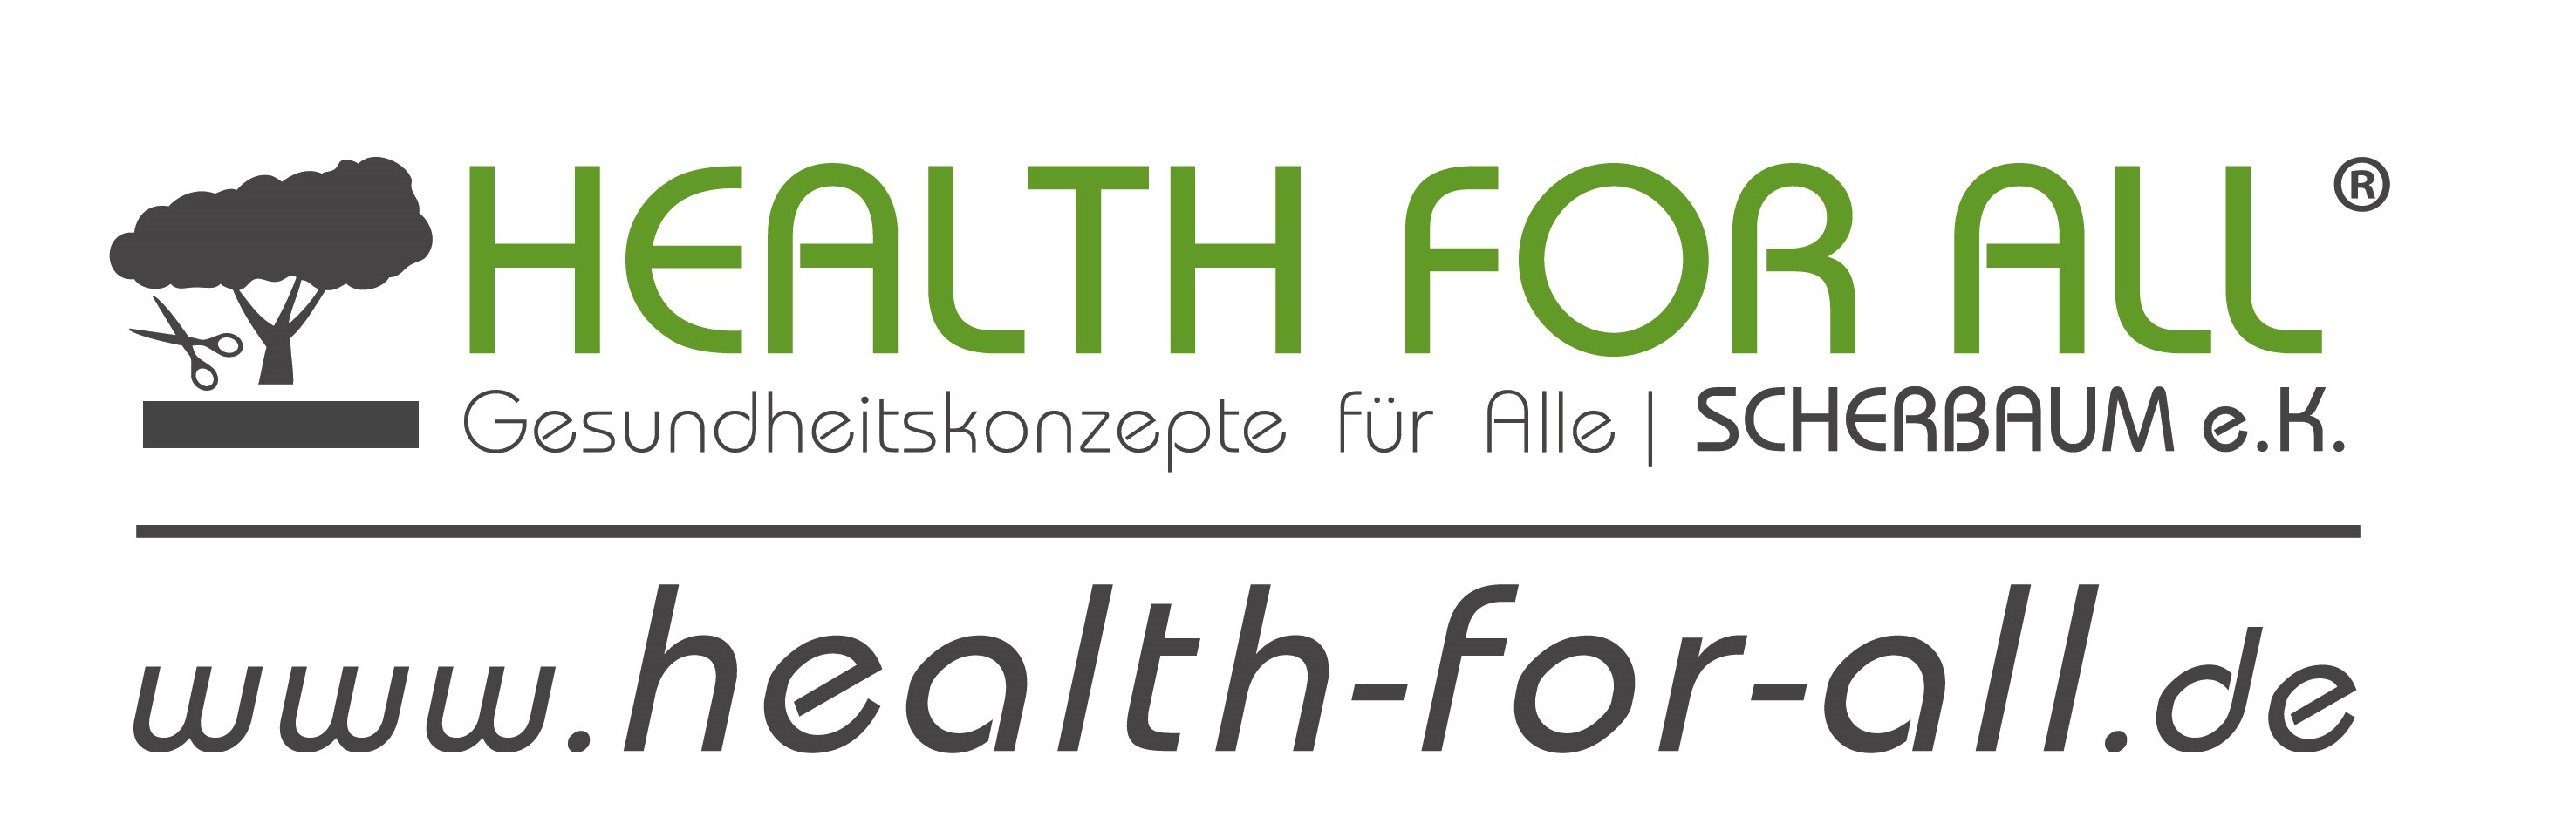 Health-for-all Scherbaum e.K.